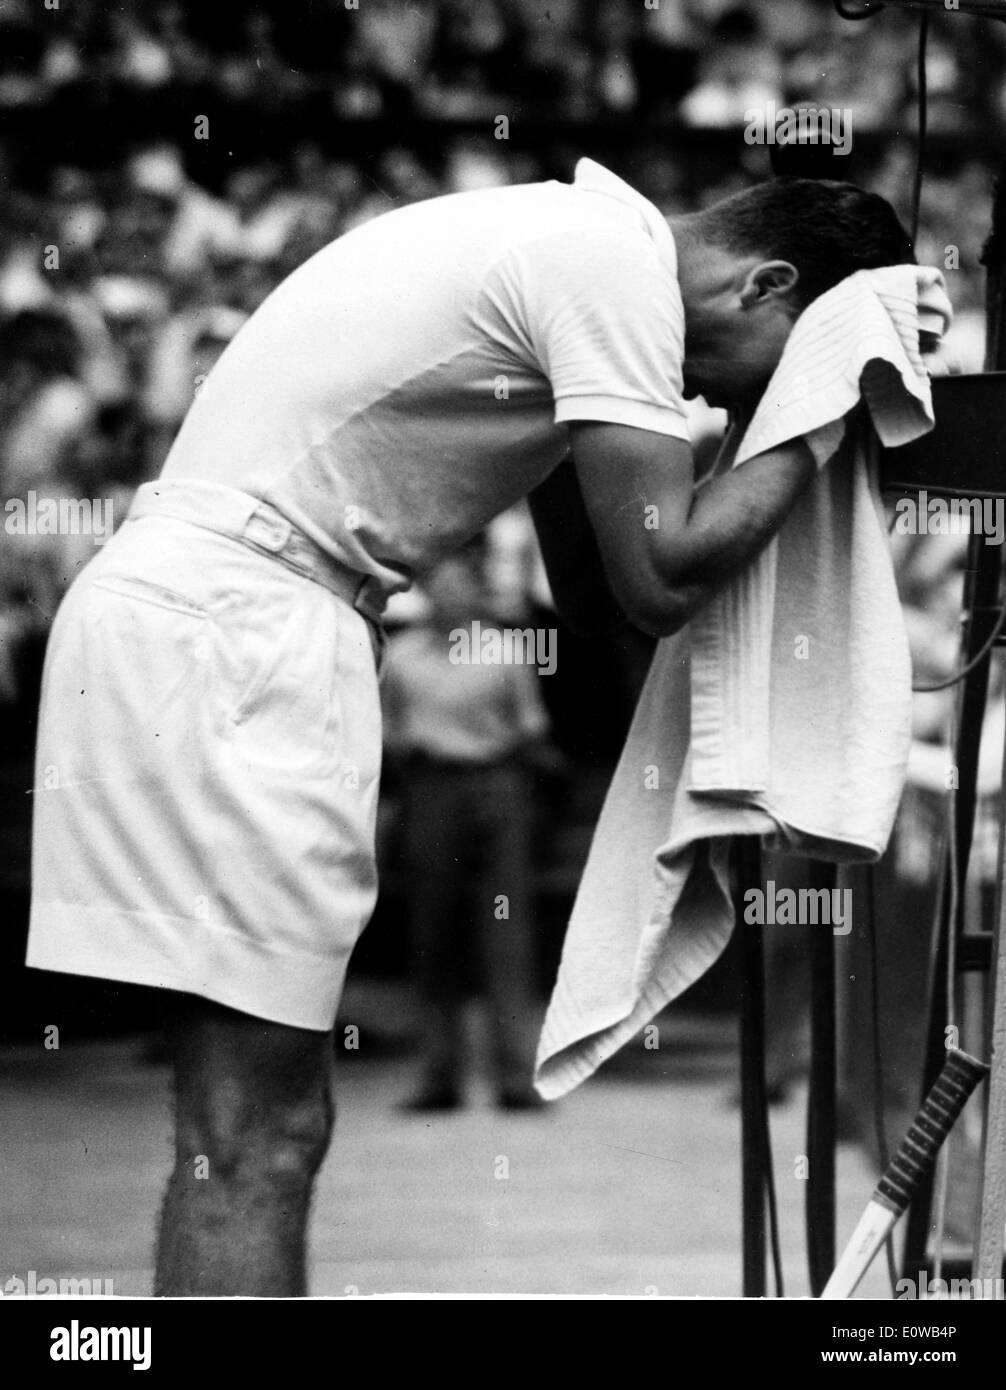 Tennis player Vic Seixas wipes his face - Stock Image